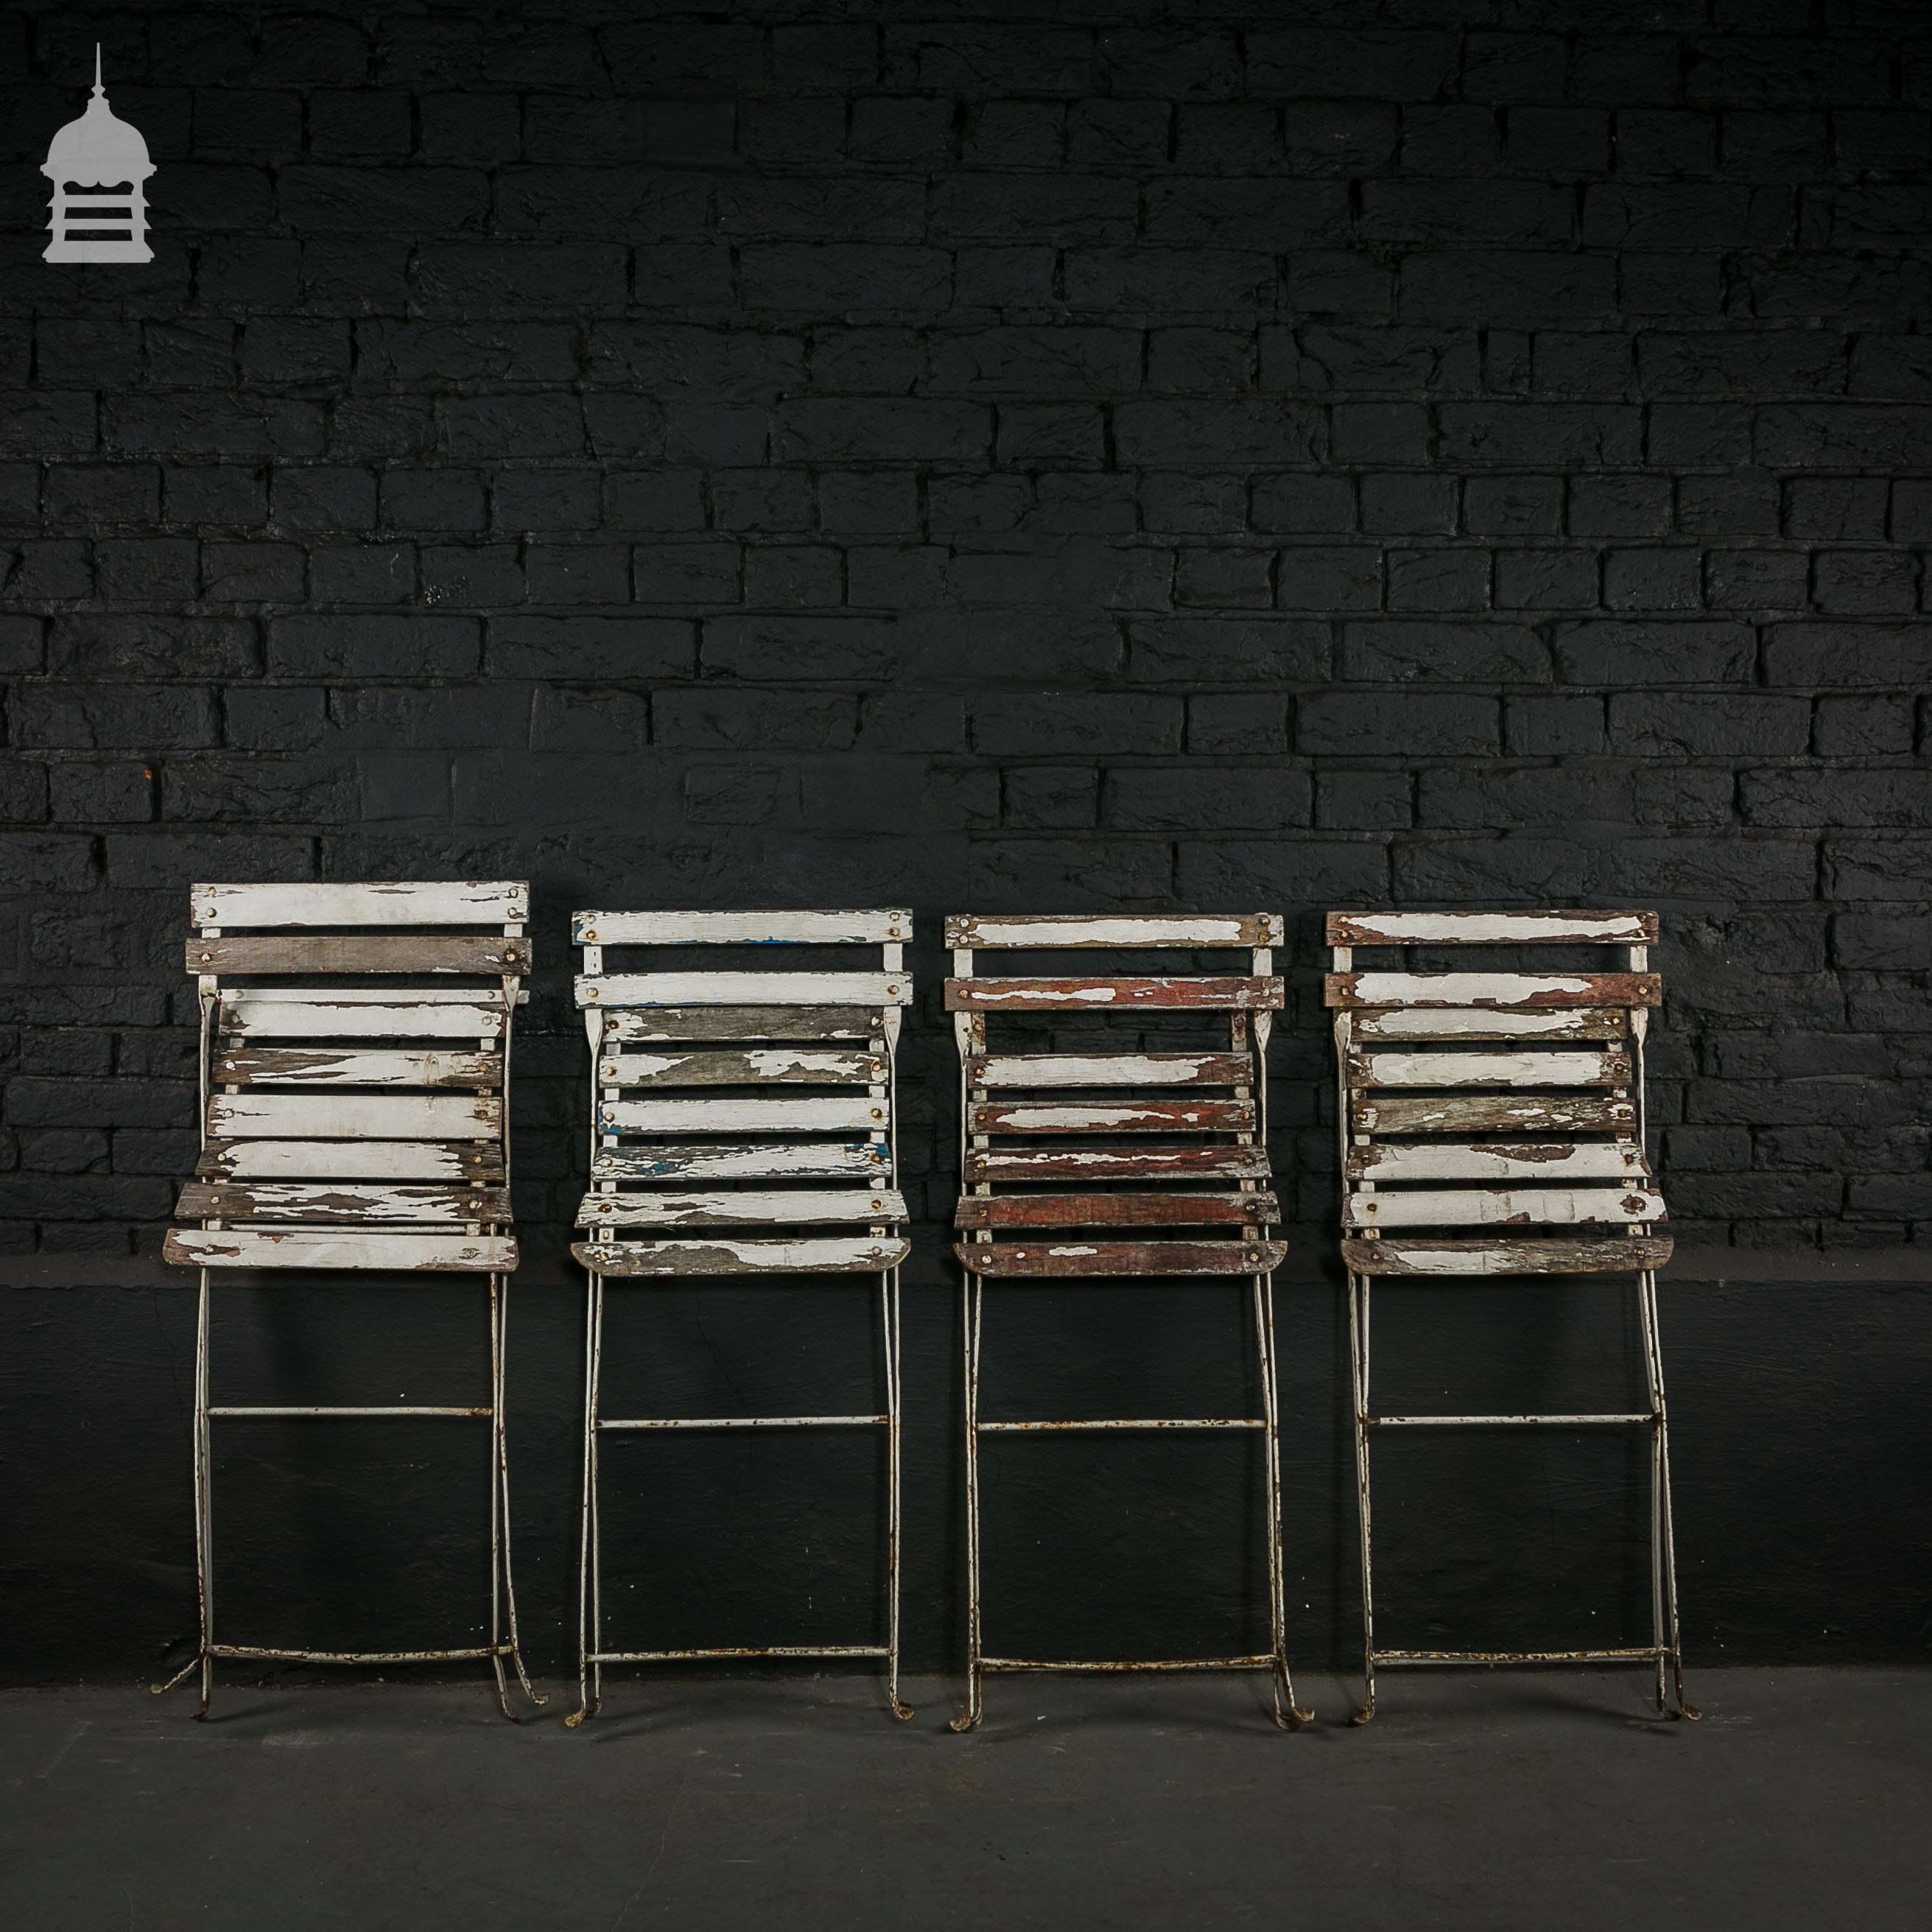 Set of Four Folding Garden Chairs made of Iron with Hardwood Slats